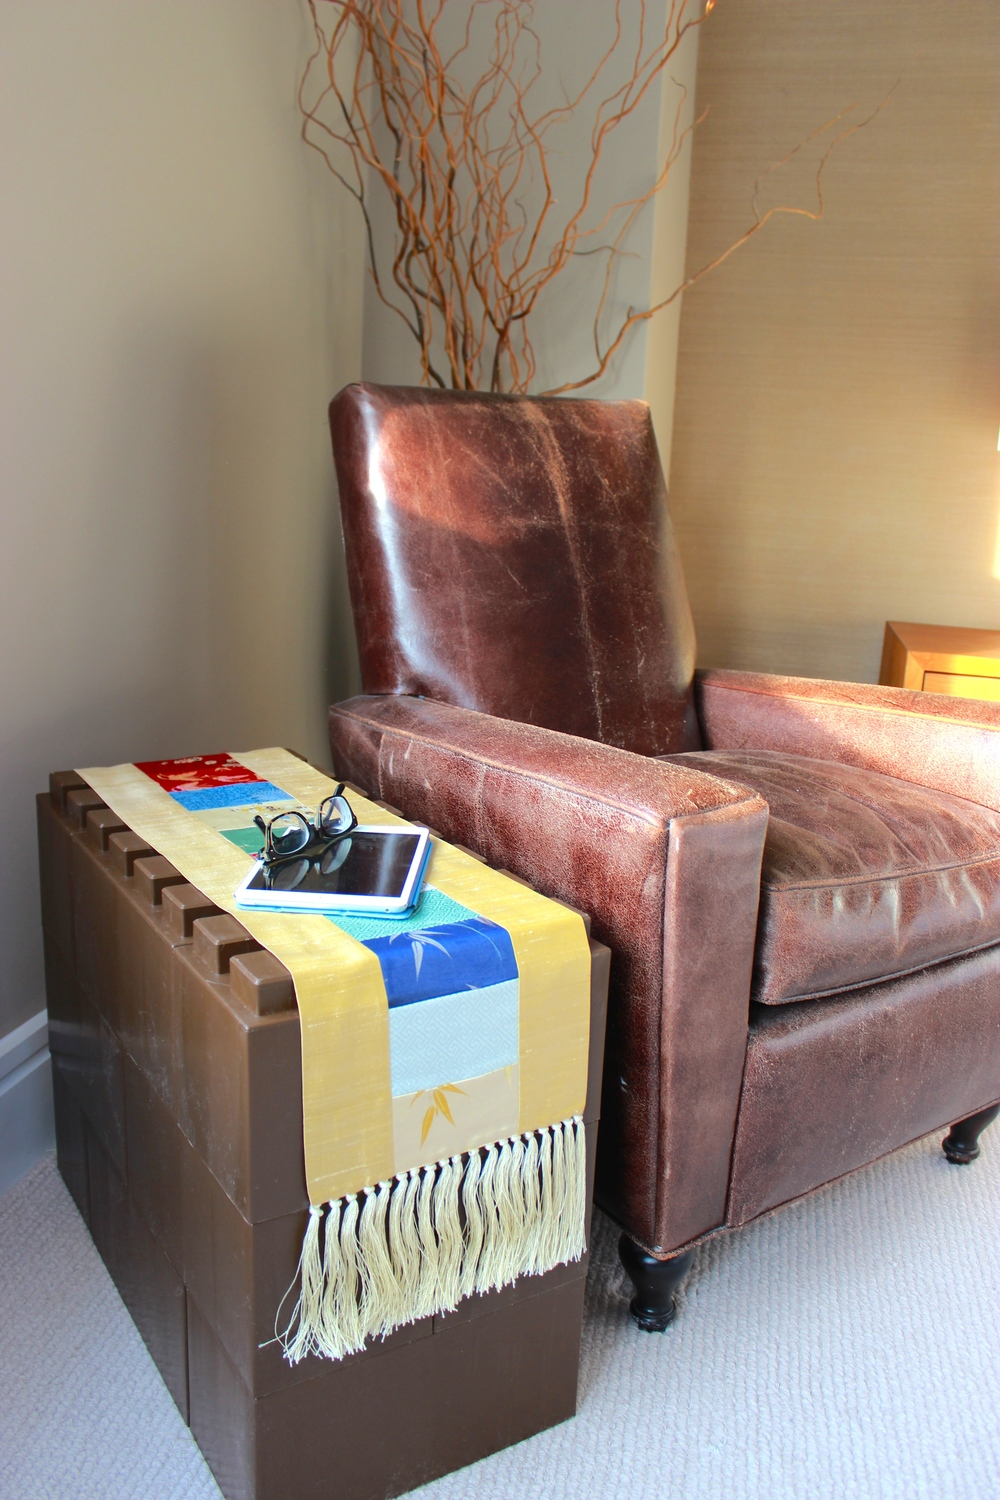 Use for modularside tables and end tables.